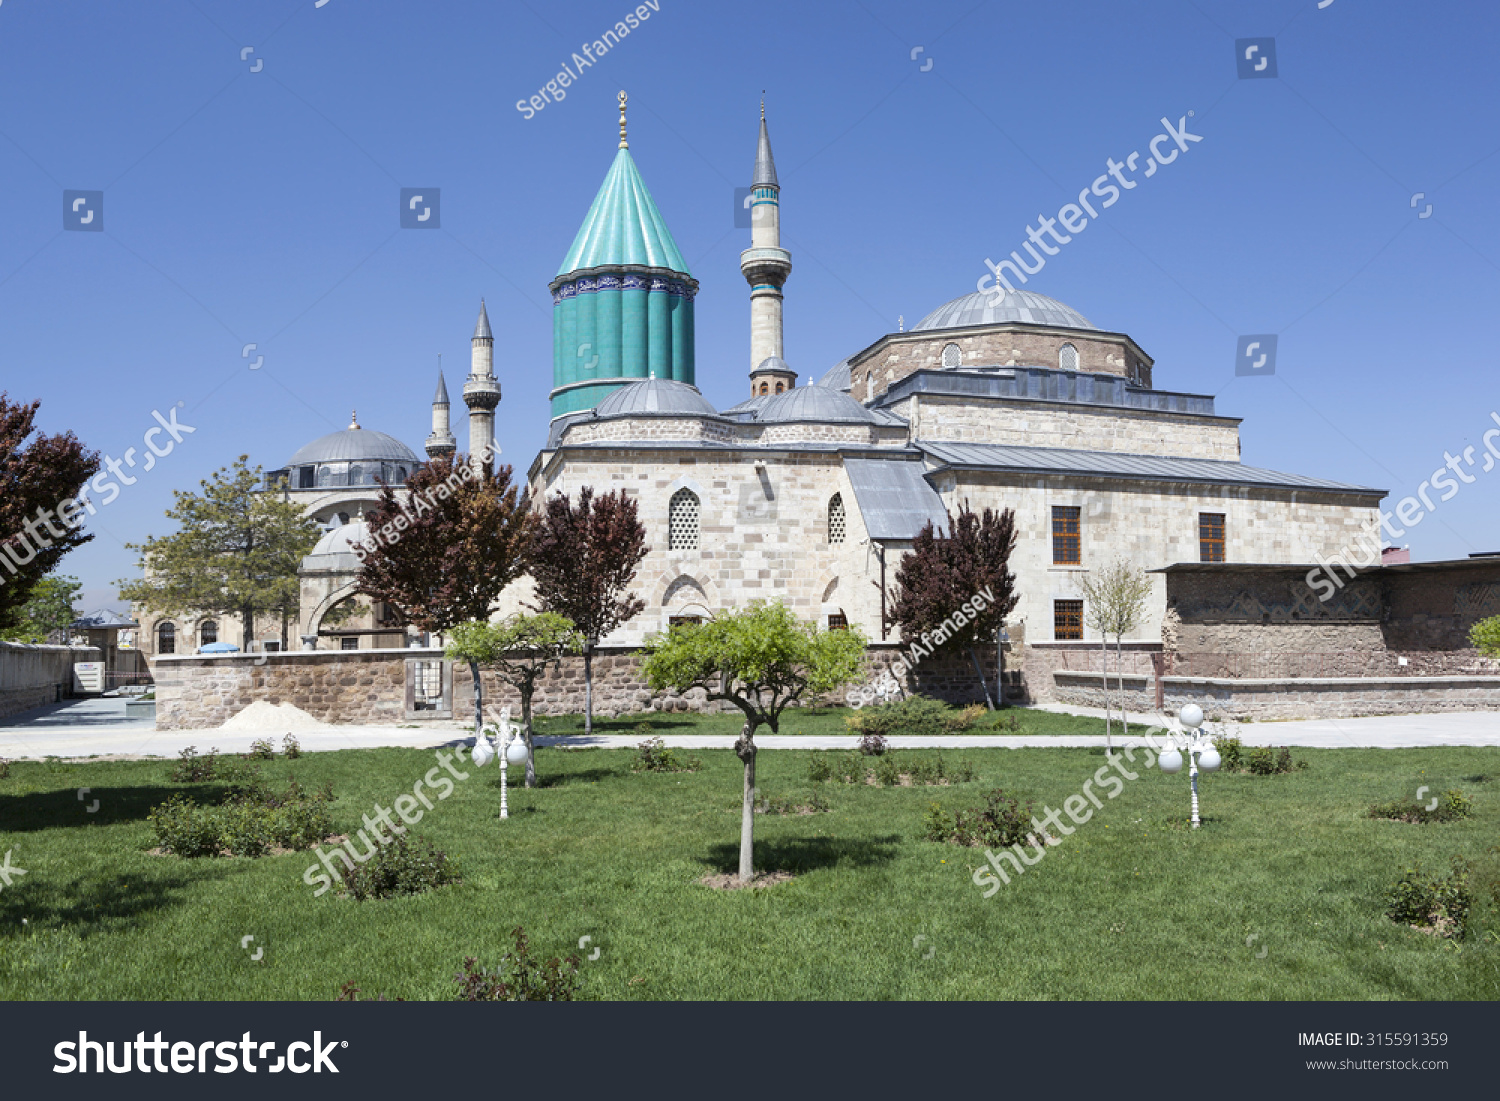 Mausoleum of Mevlana Rumi in Konya Turkey